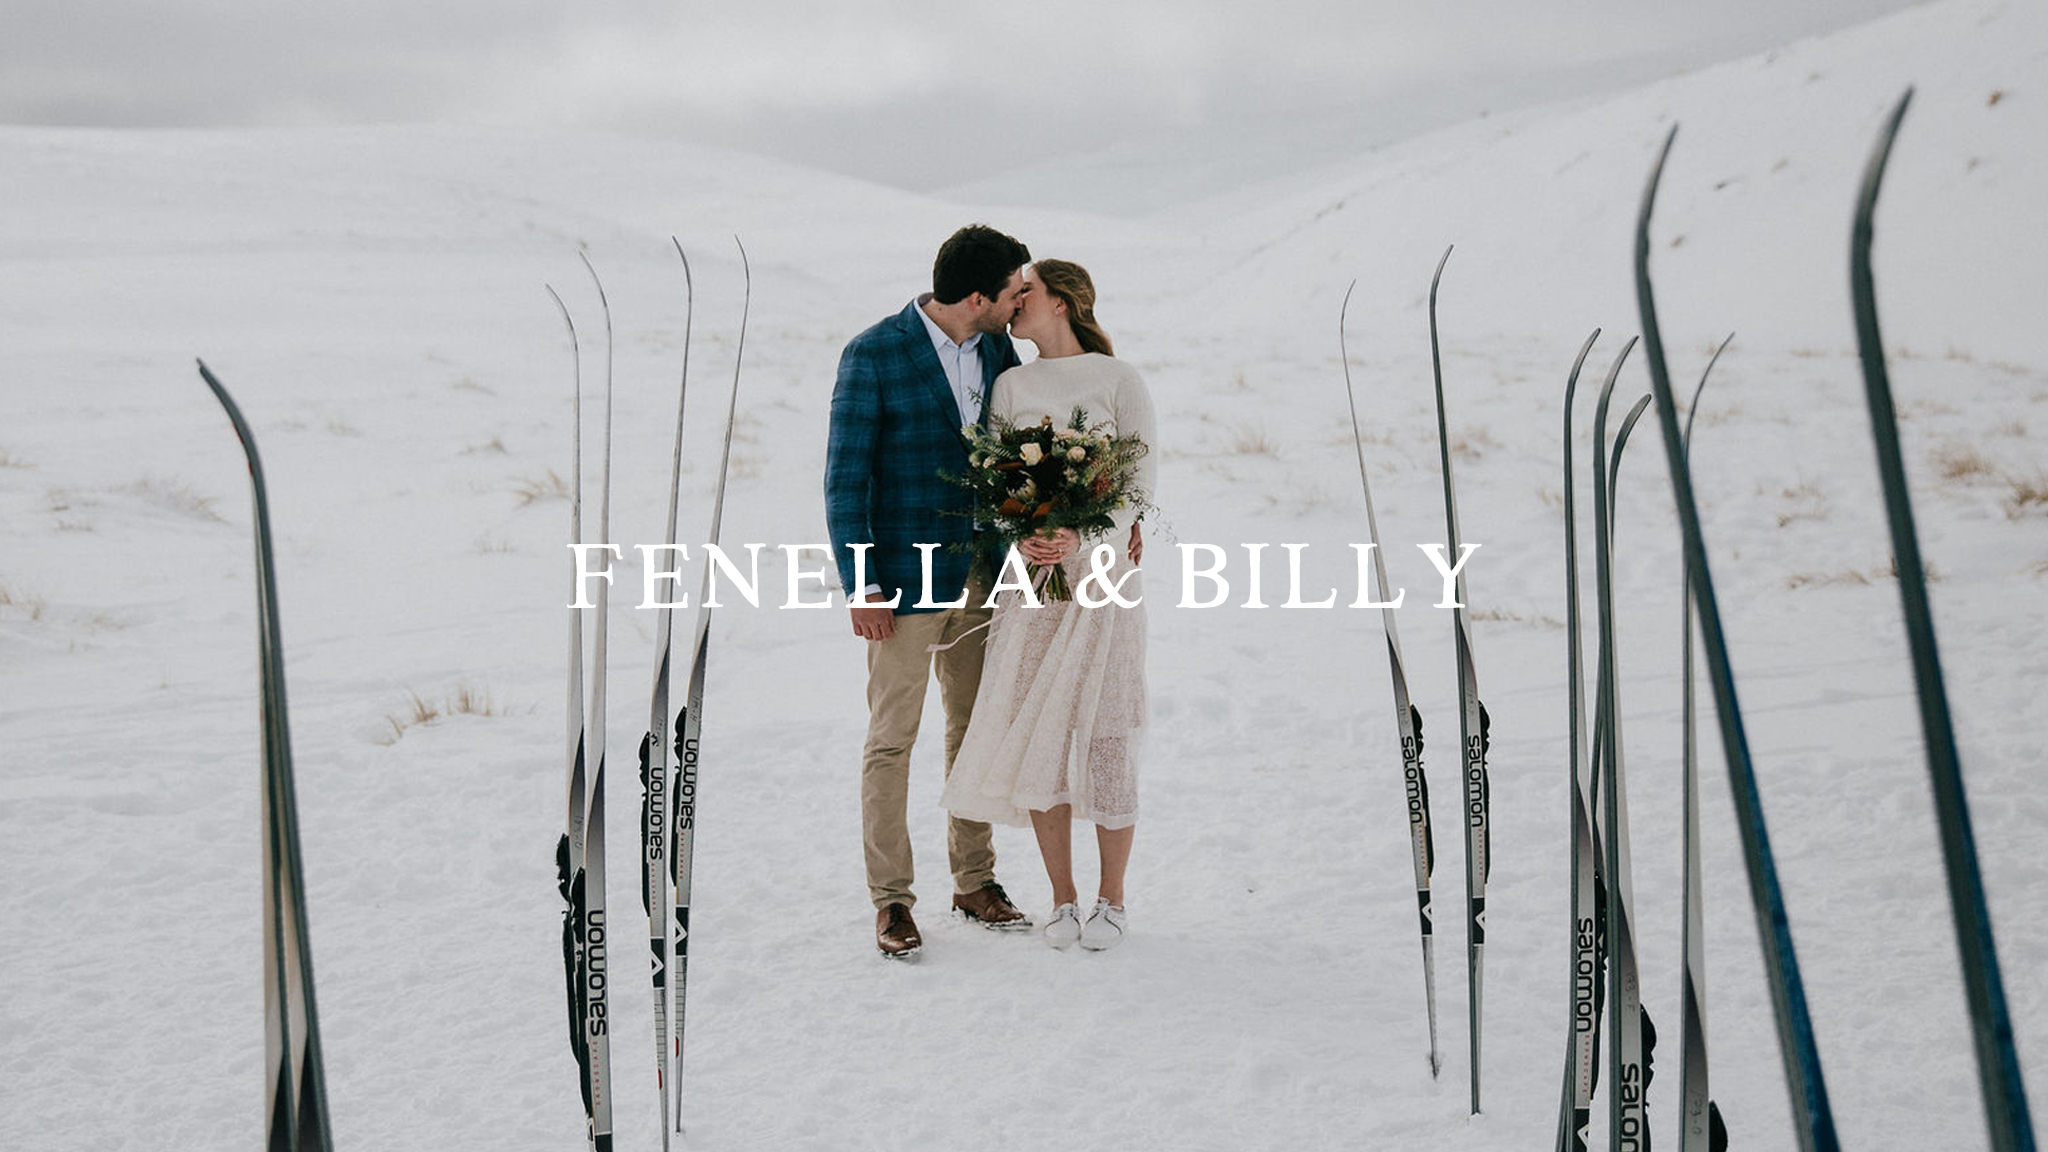 Fenella + Billy | Queenstown, New Zealand | Snow Farm